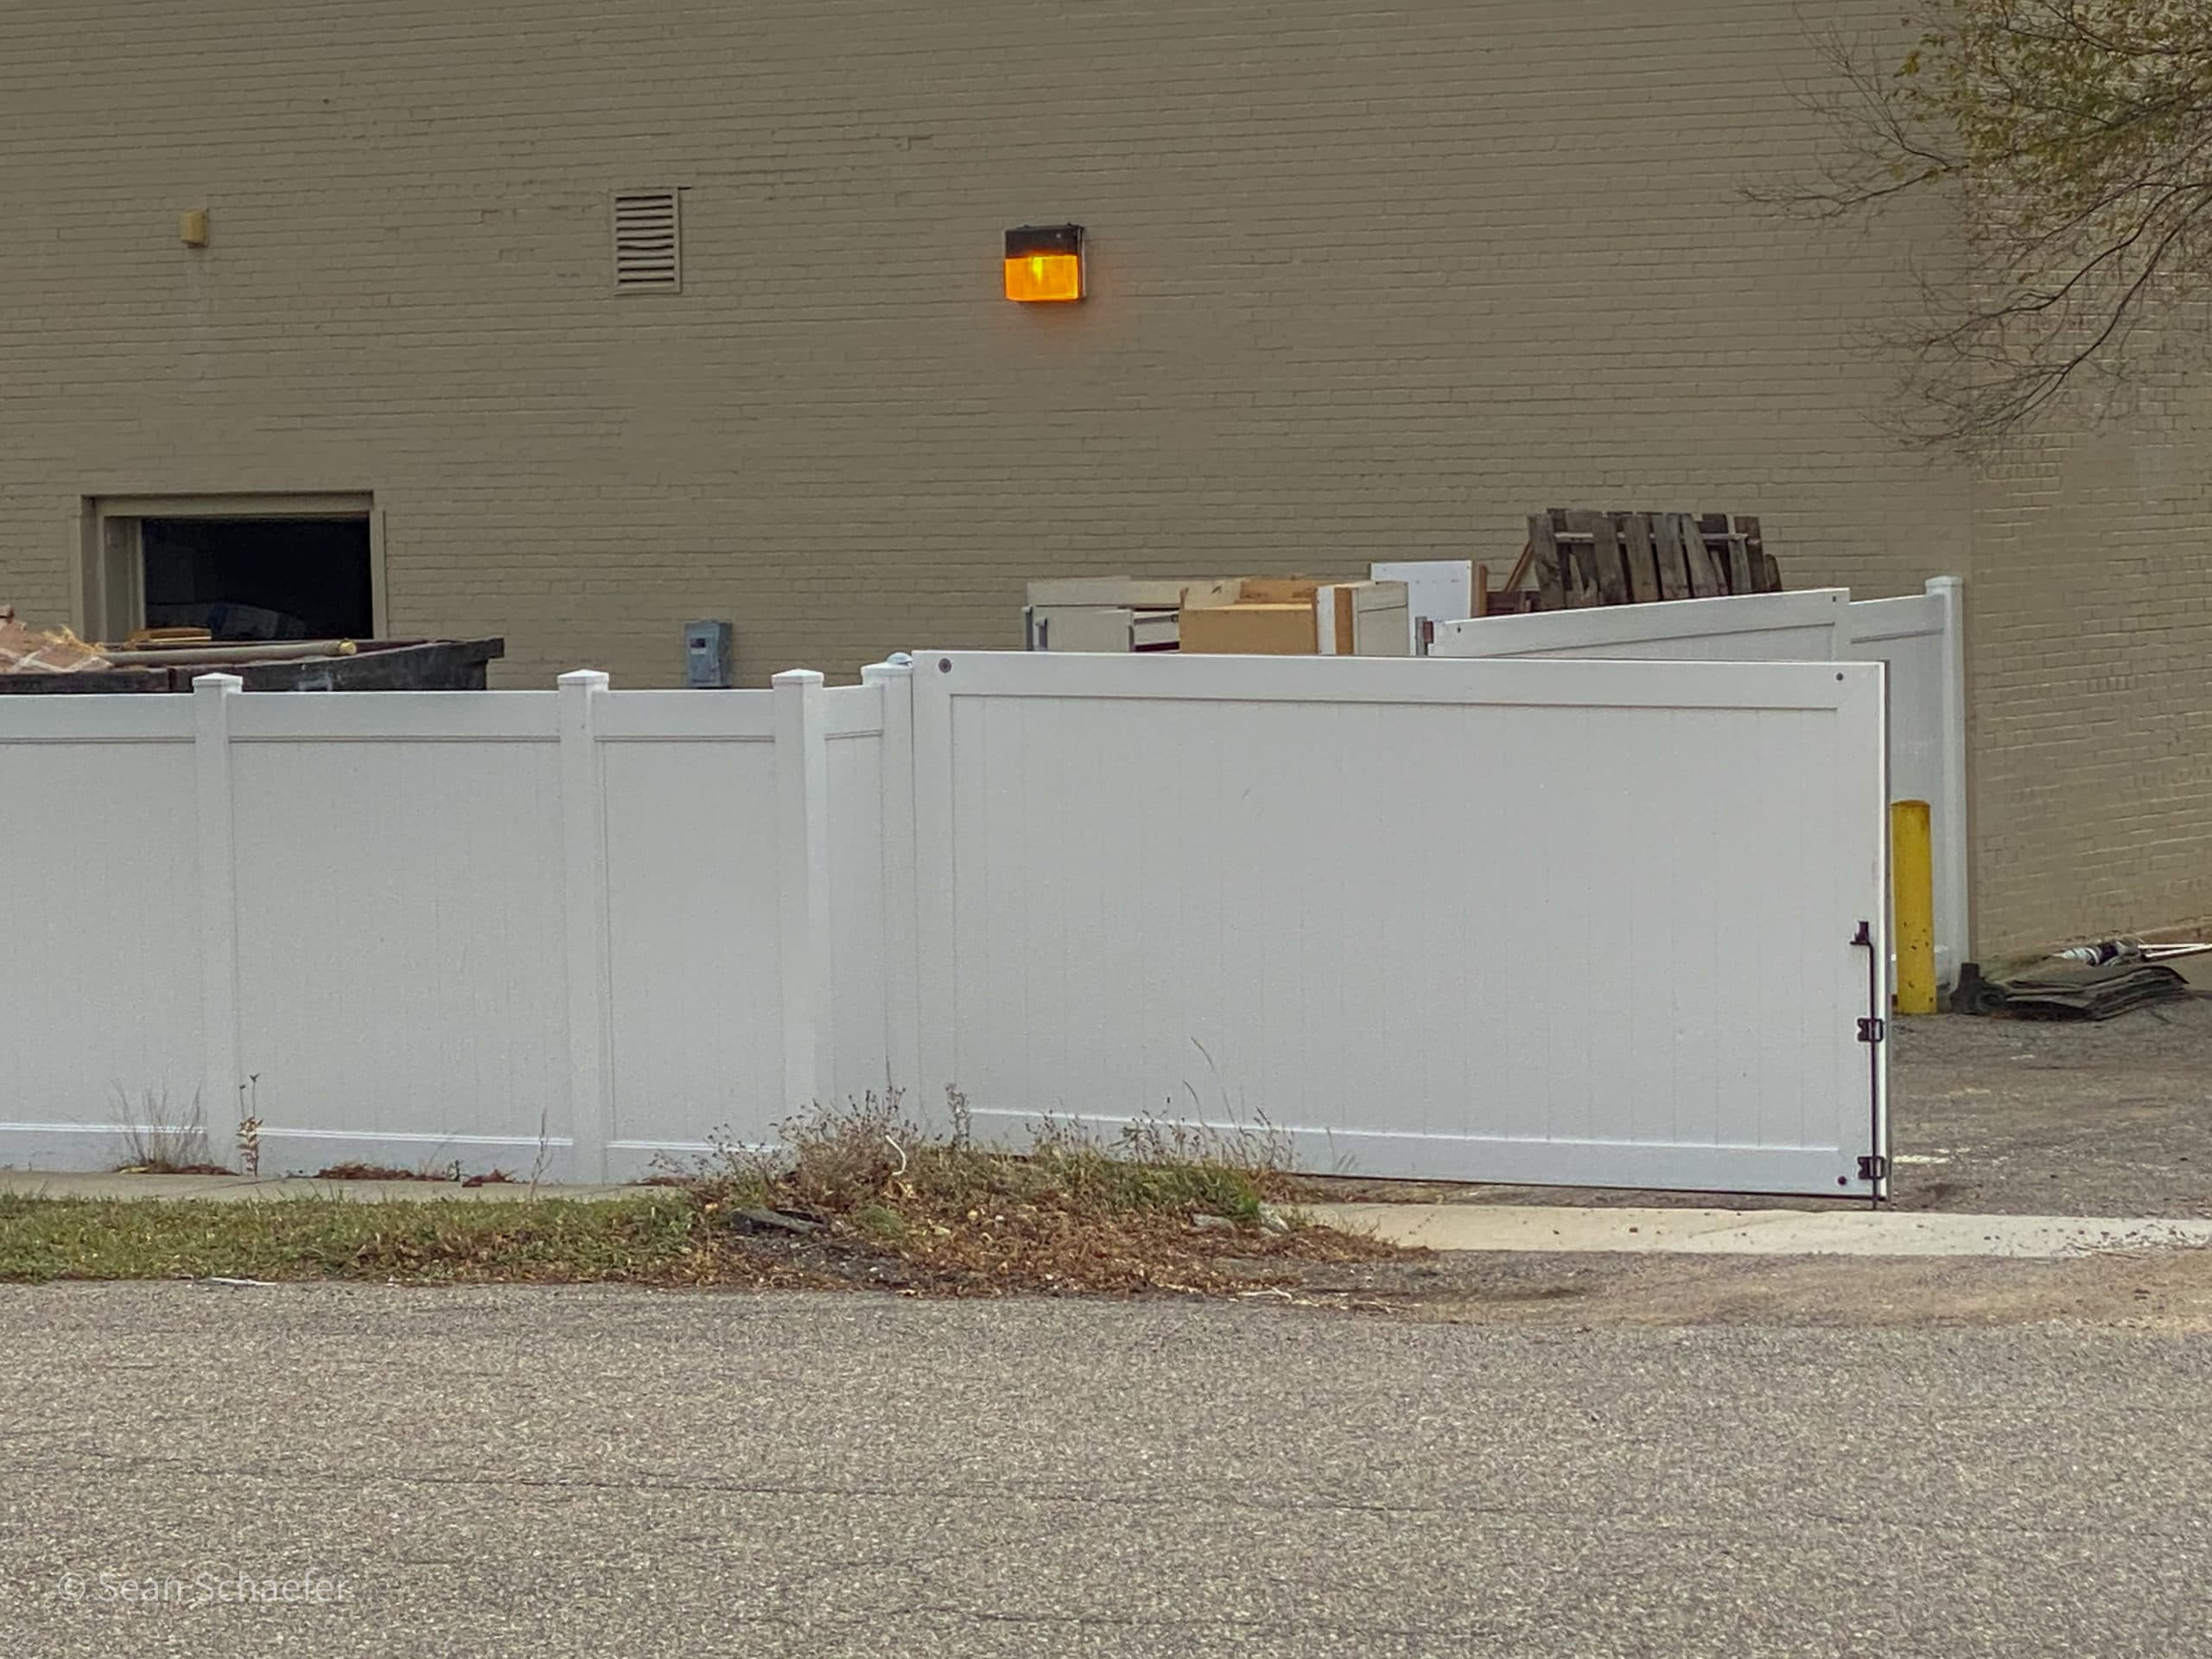 Image of PVC / vinyl commercial dumpster enclosure and gates at Habitat for Humanity ReStore